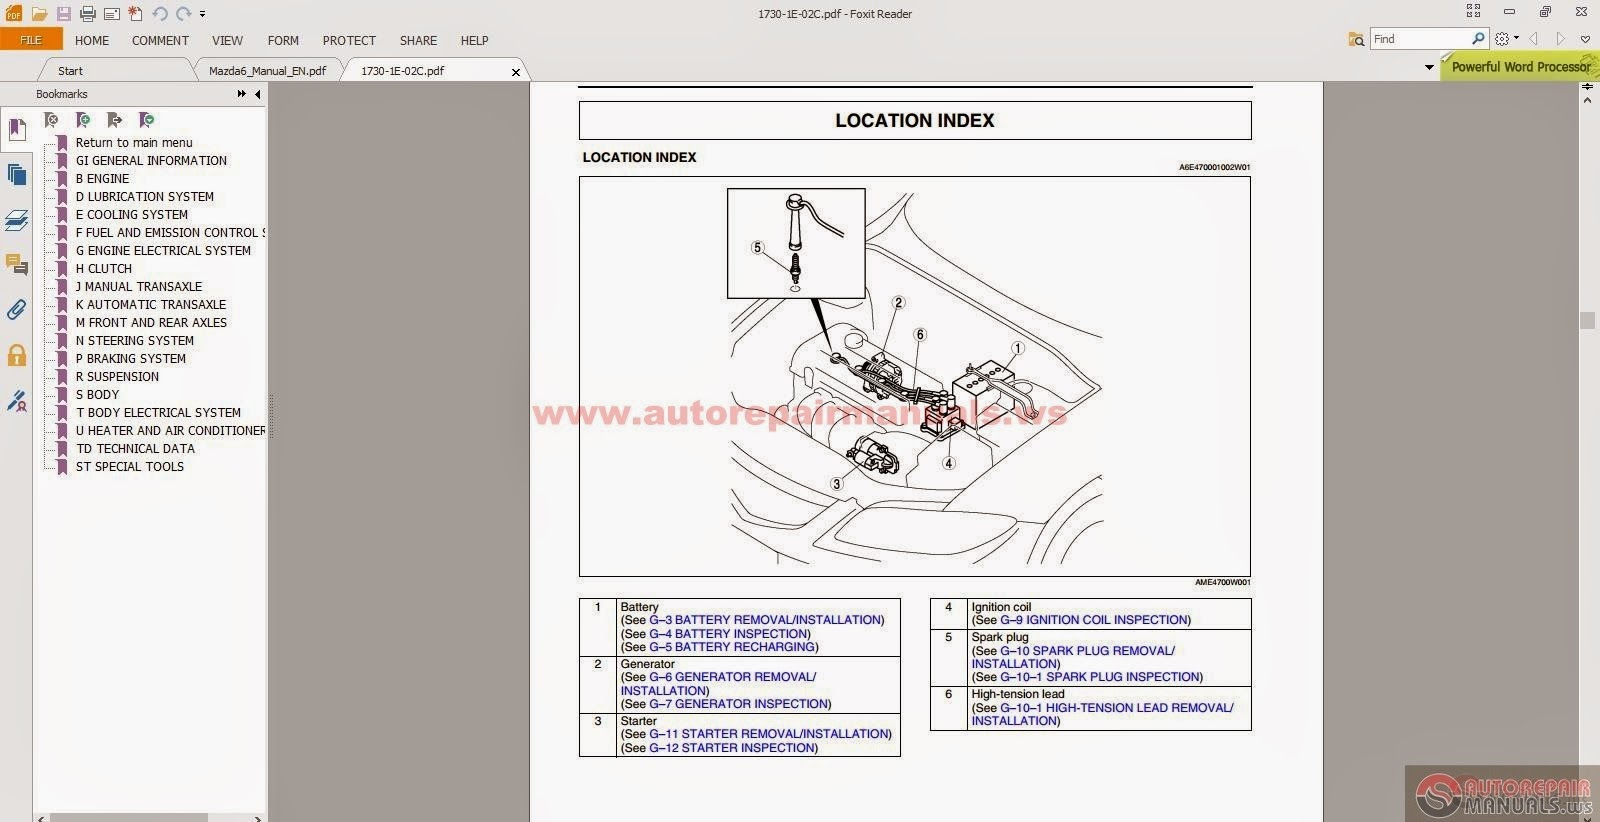 Free Automotive Manuals Mazda 6 Full Workshop Manual Inc Engine 2006 Diagram